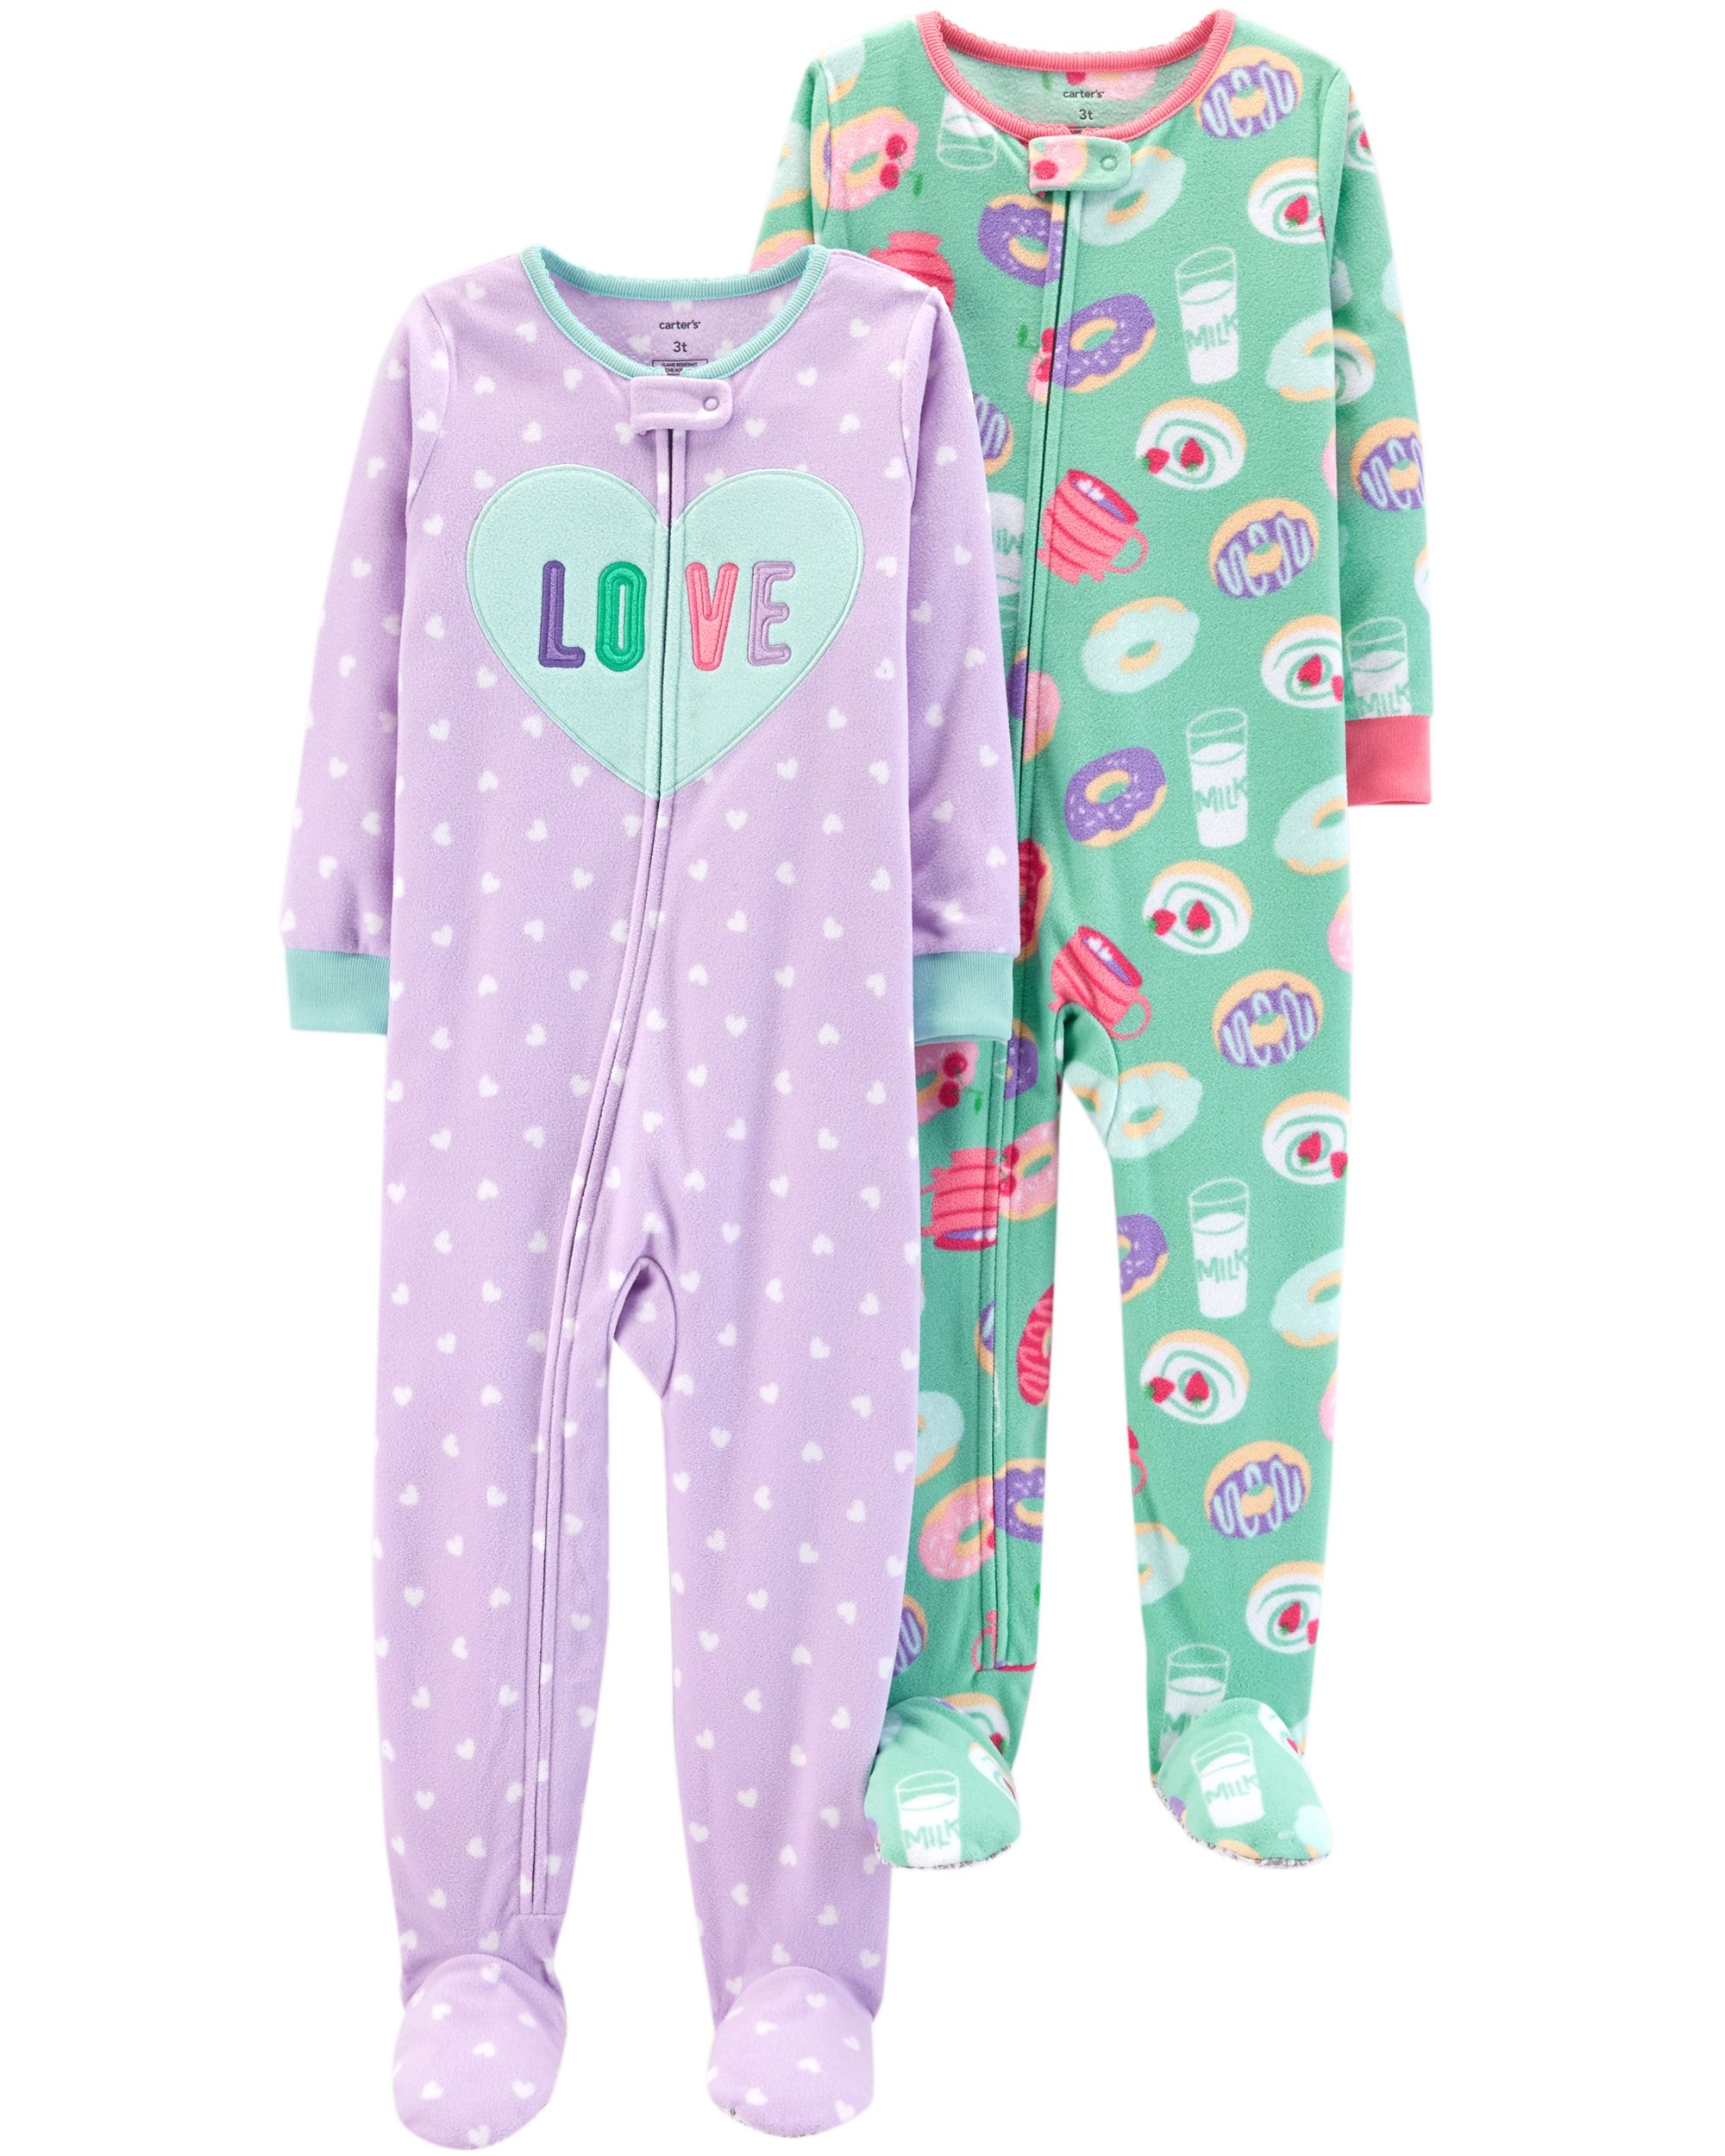 Carter's Baby Girls 2-Pack Fleece Pajamas, Love/Donuts, 24 Months